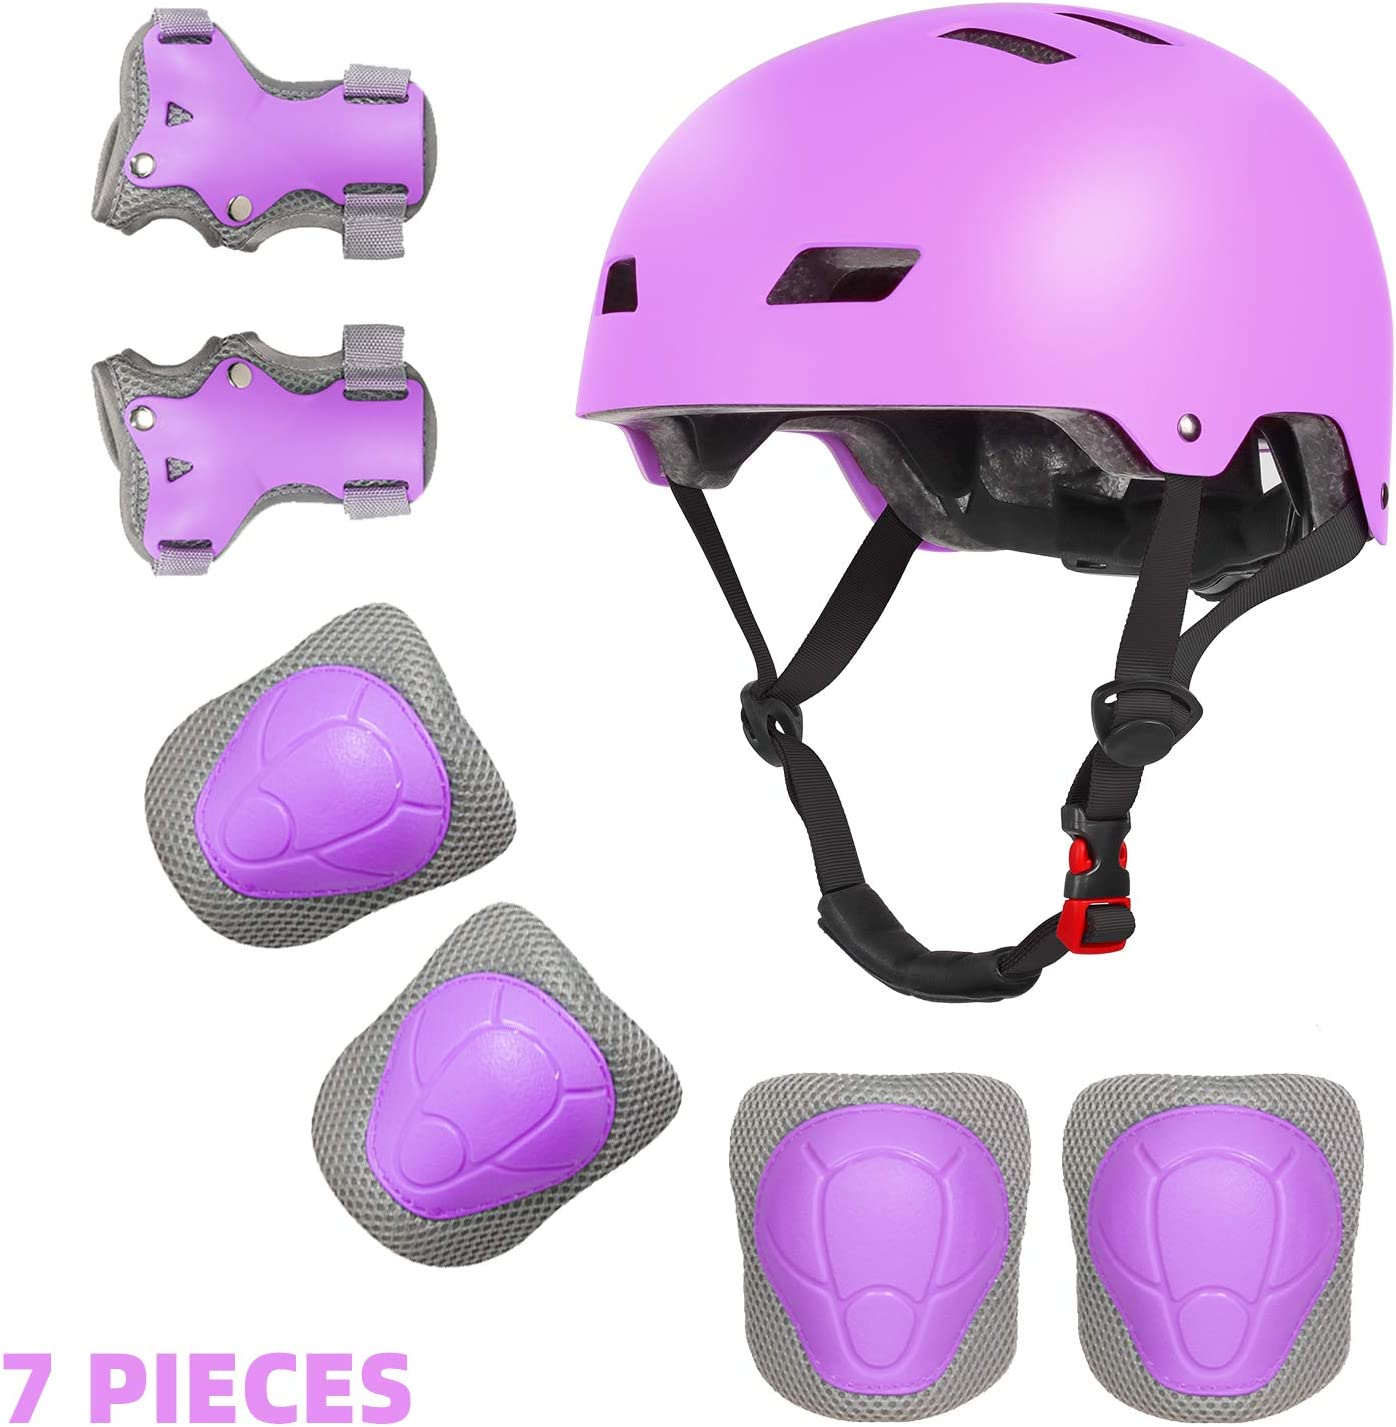 EXZ Kids Bike Helmet Knee Elbow Wrist Pads 2-8 Years Toddler to Youth for Bike Skateboarding Roller Blading Scooter Riding Bicycling Roller Skating and More